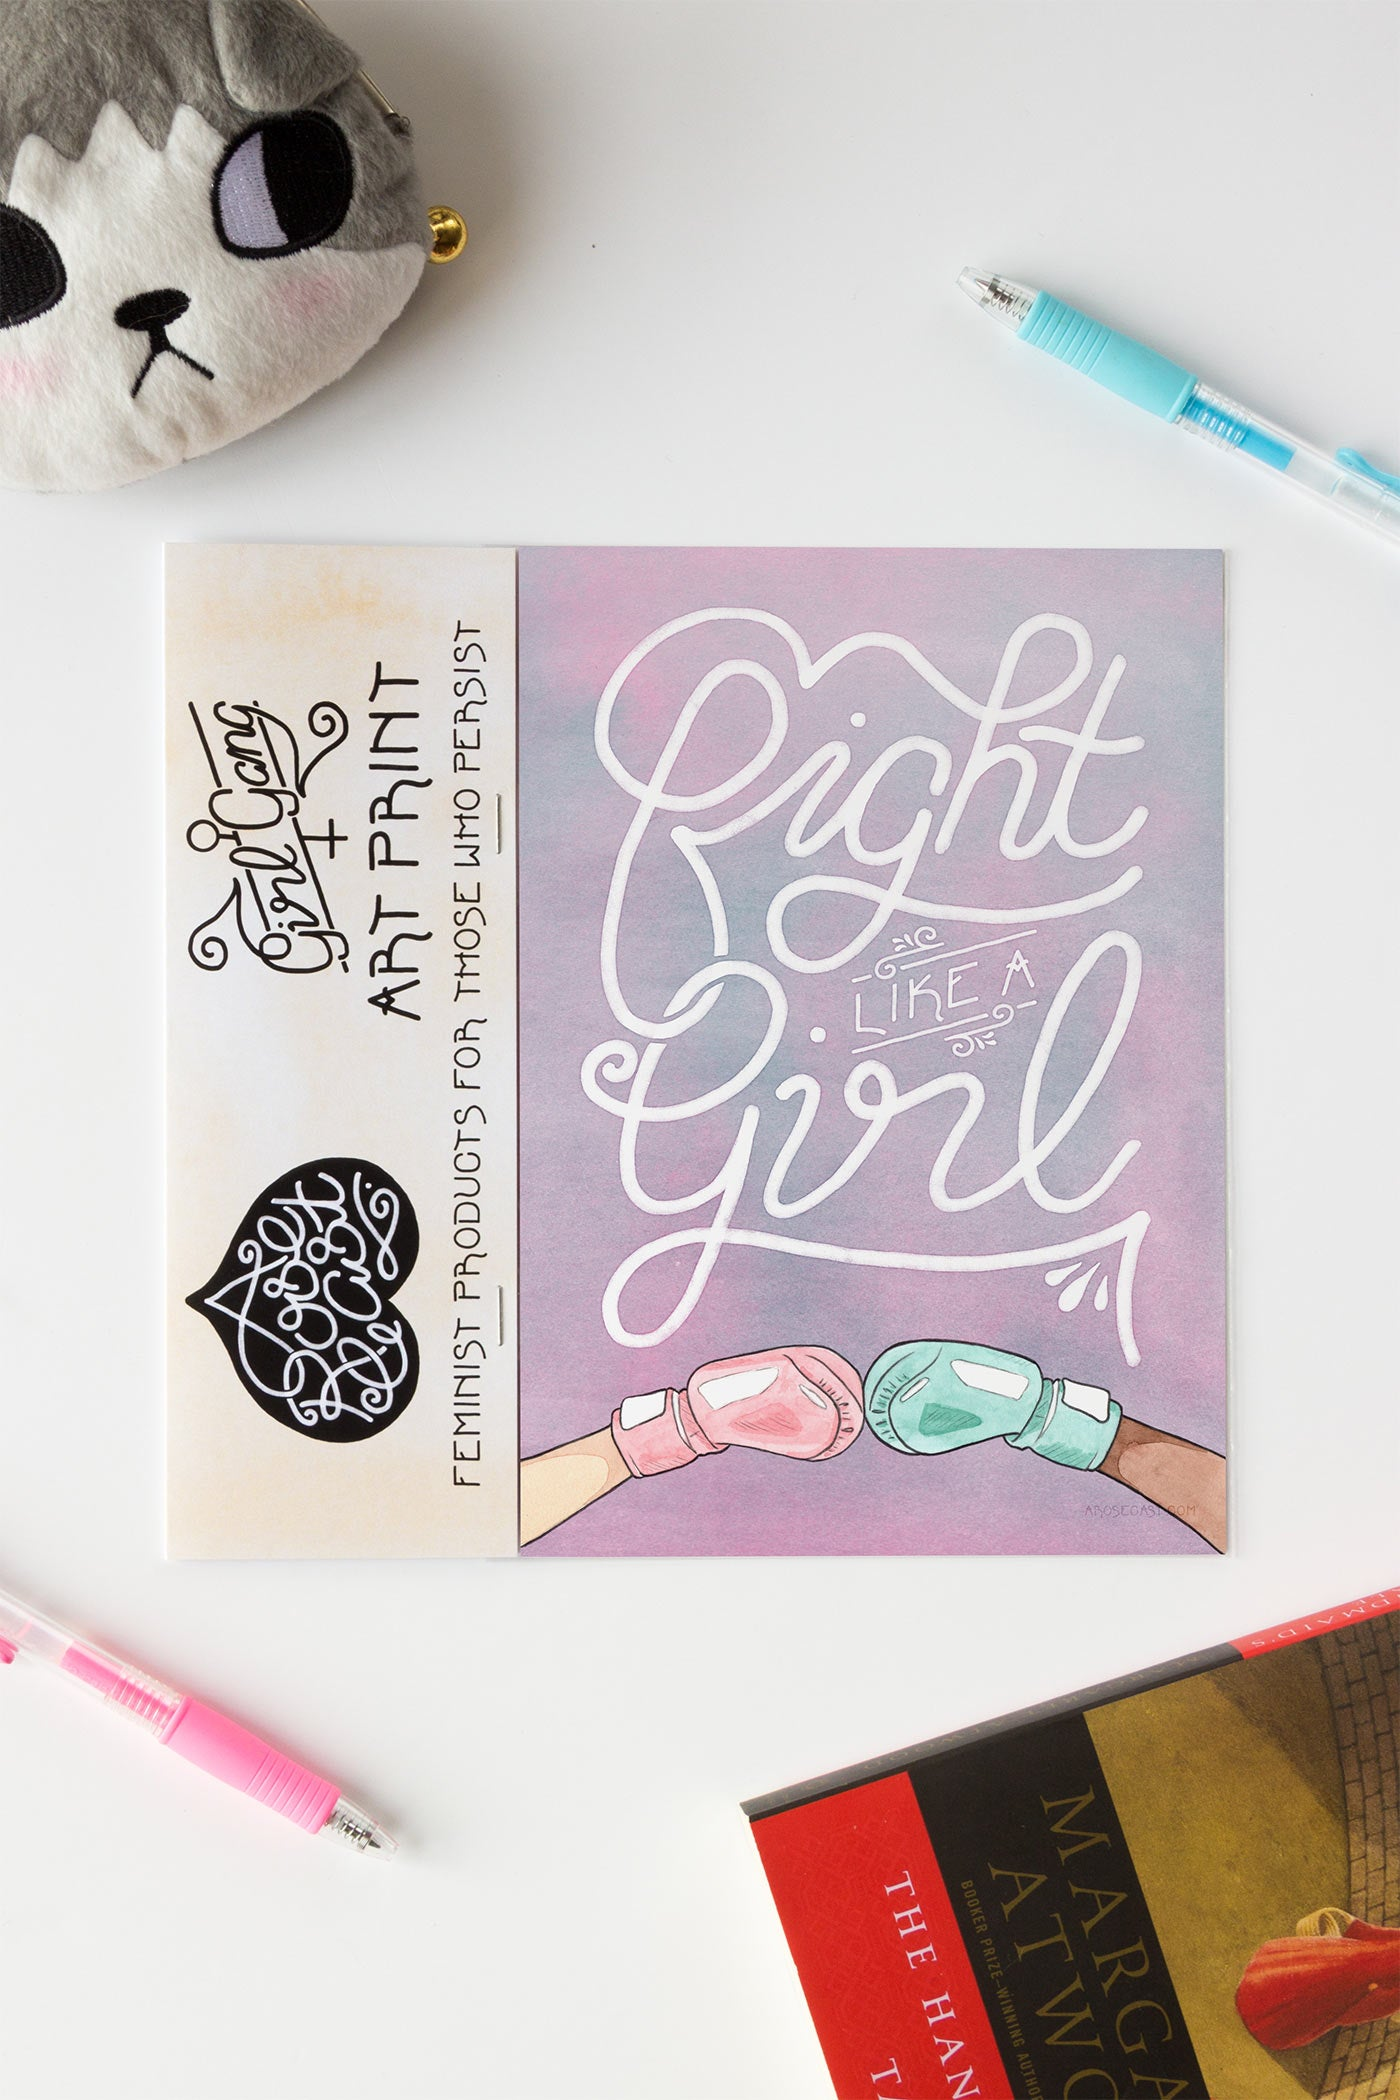 Fight Like a Girl Feminist Illustrated Art Print - A Rose Cast